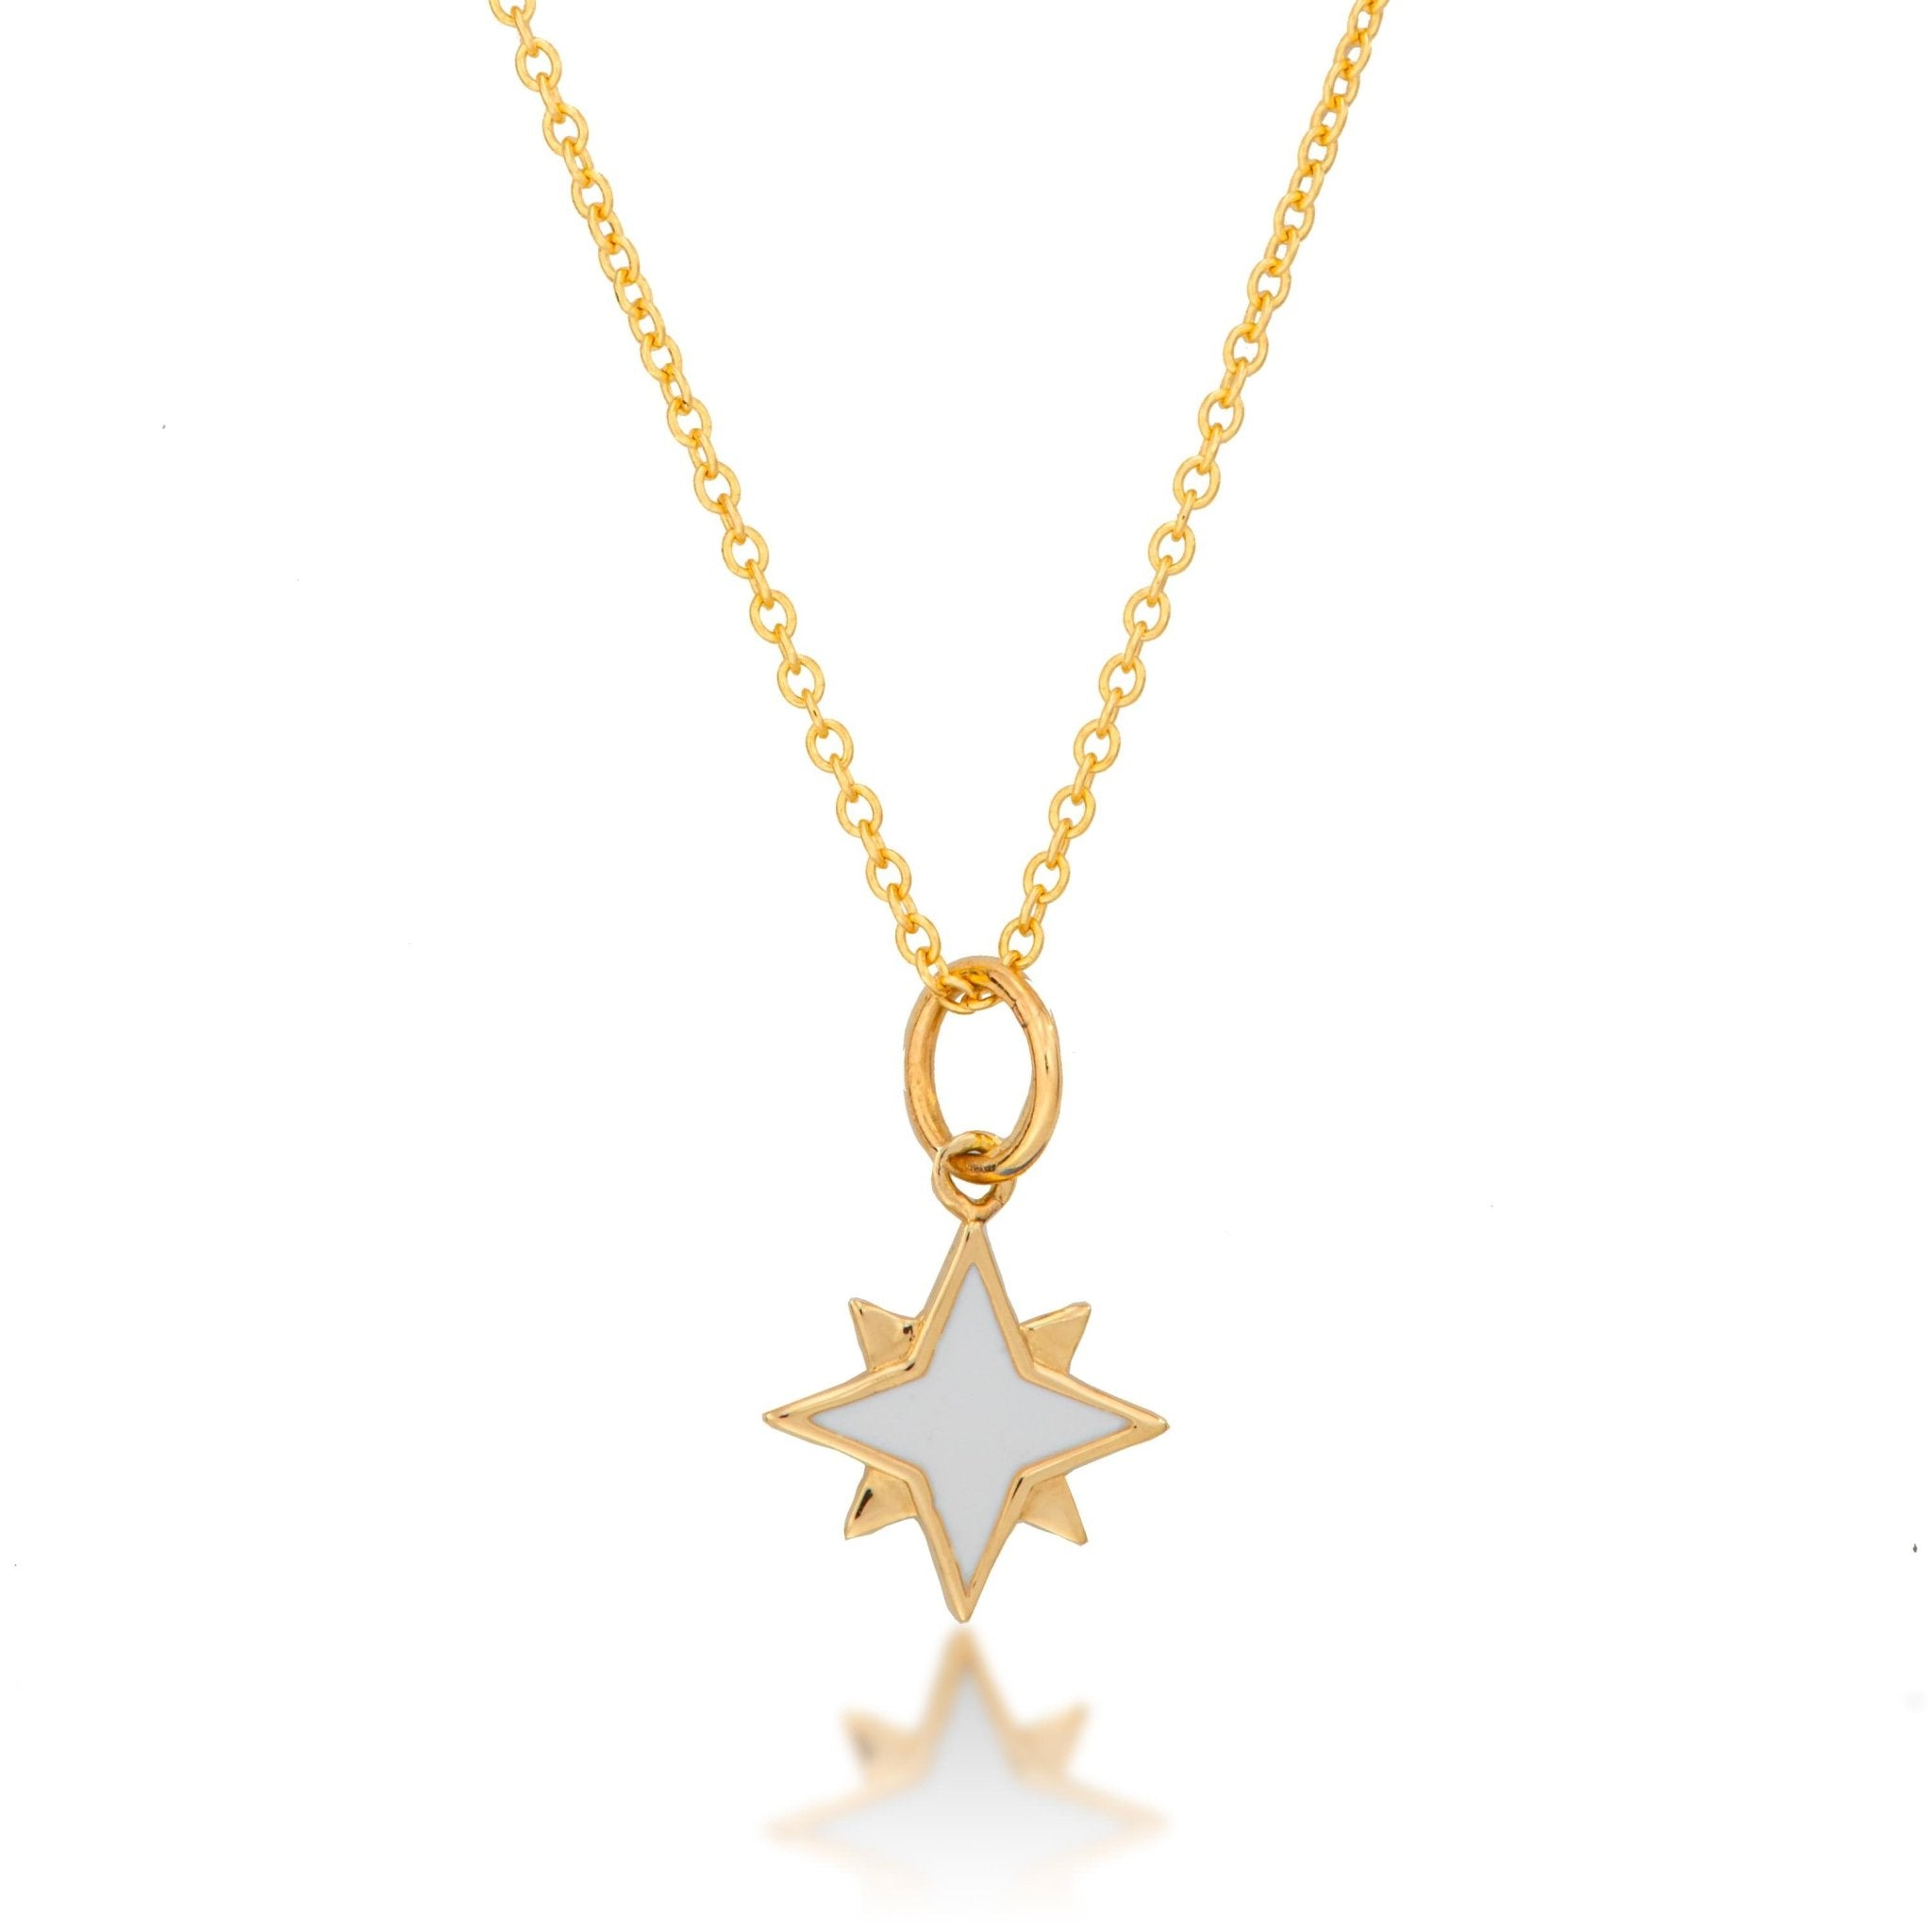 14K Gold White Enamel Starburst Necklace - Alexis Jae